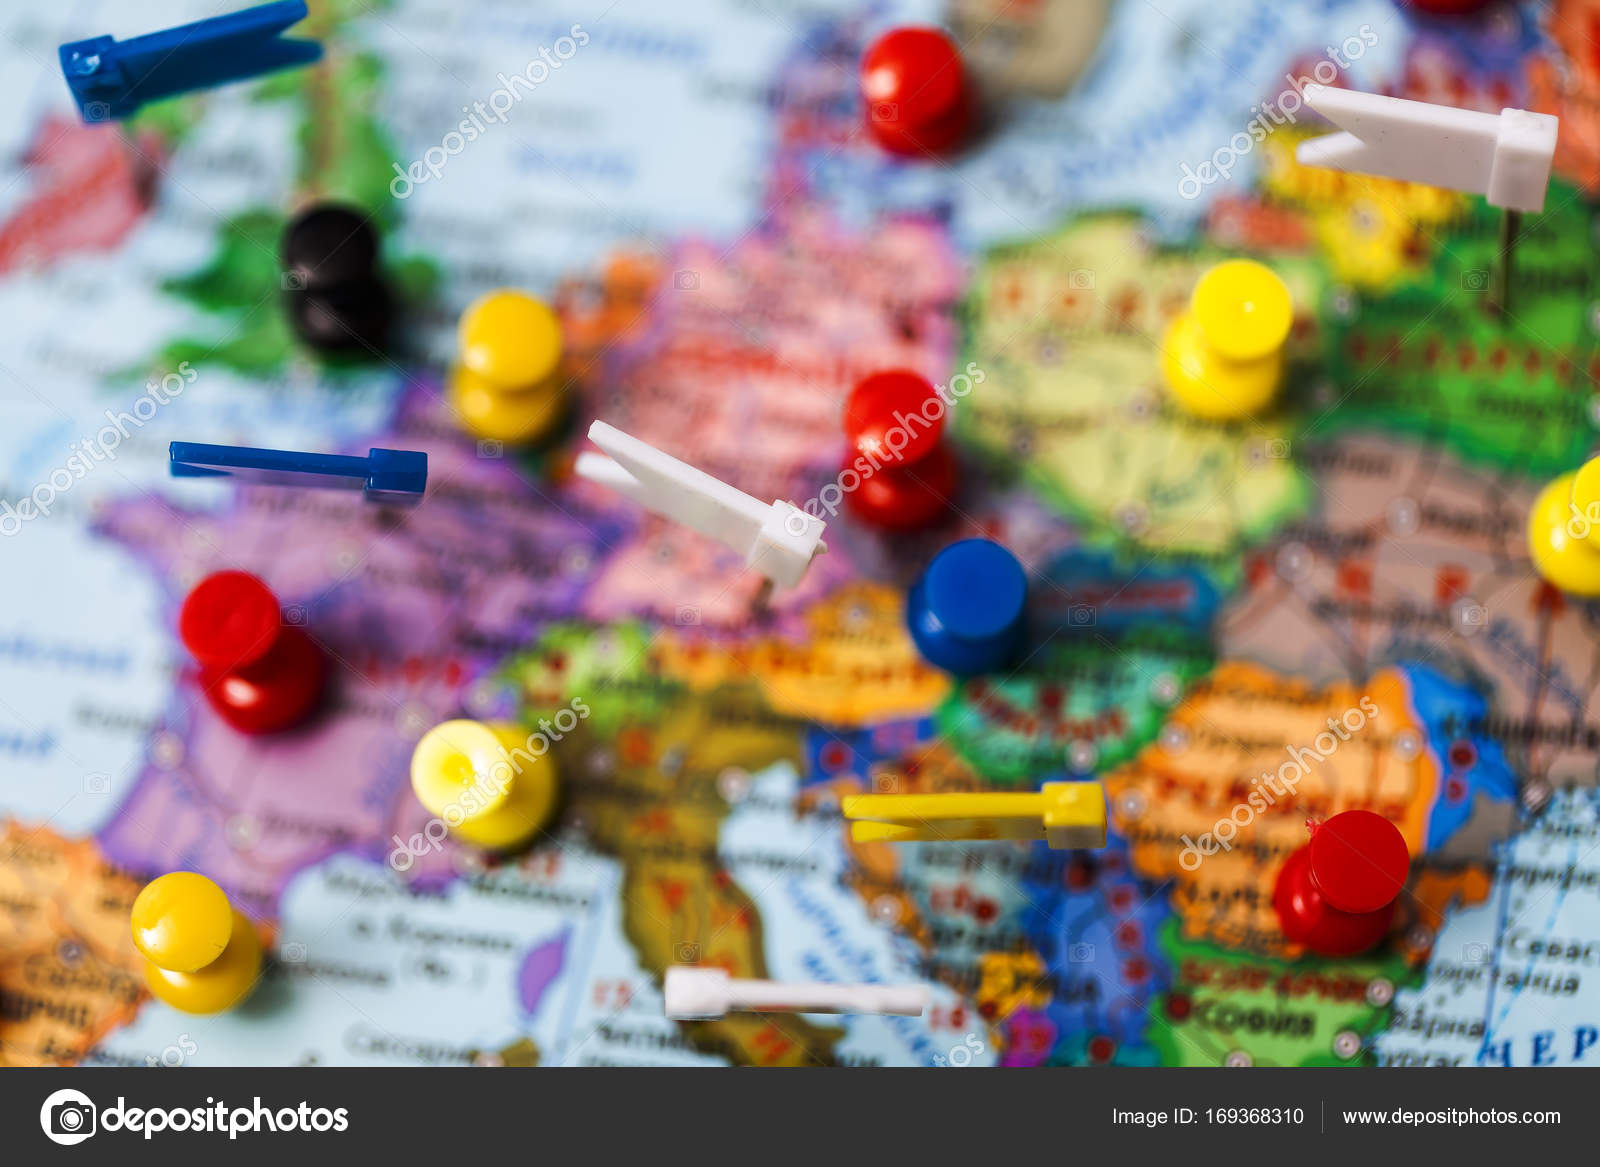 World map country flags marked pin city pinpoint stock photo world map country flags marked pin city pinpoint stock photo gumiabroncs Choice Image